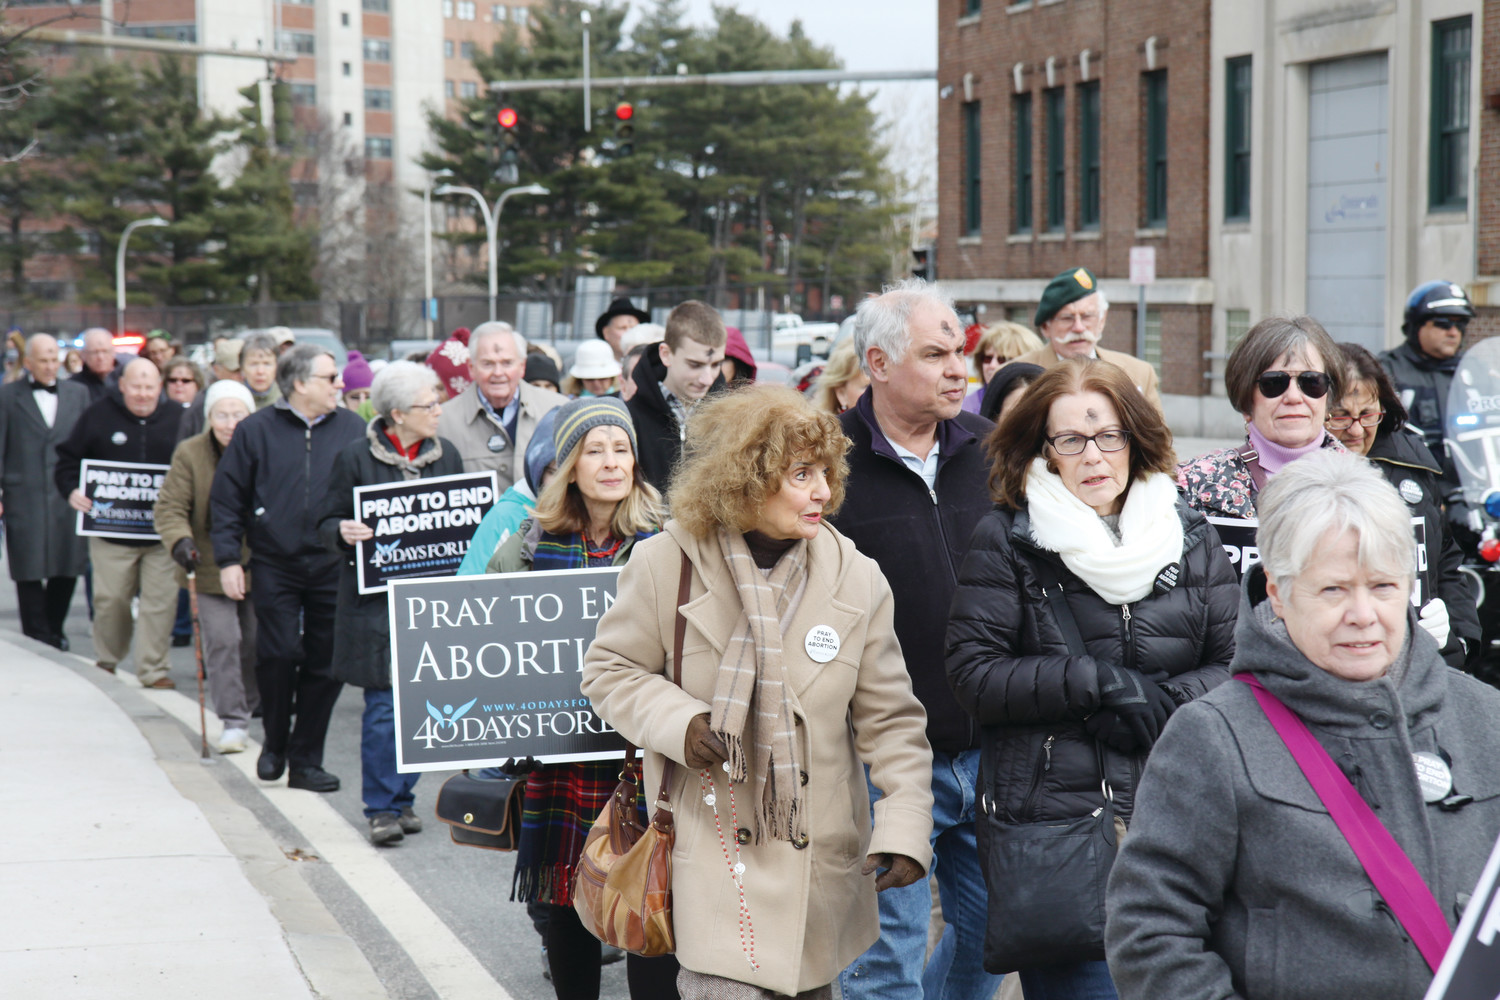 A large group of pro-life advocates, led by Bishop Thomas J. Tobin and accompanied by a police escort, marched to the Providence Planned Parenthood clinic following Ash Wednesday Mass on February 14. The procession marked the start of the 40 Days for Life Lenten prayer campaign.